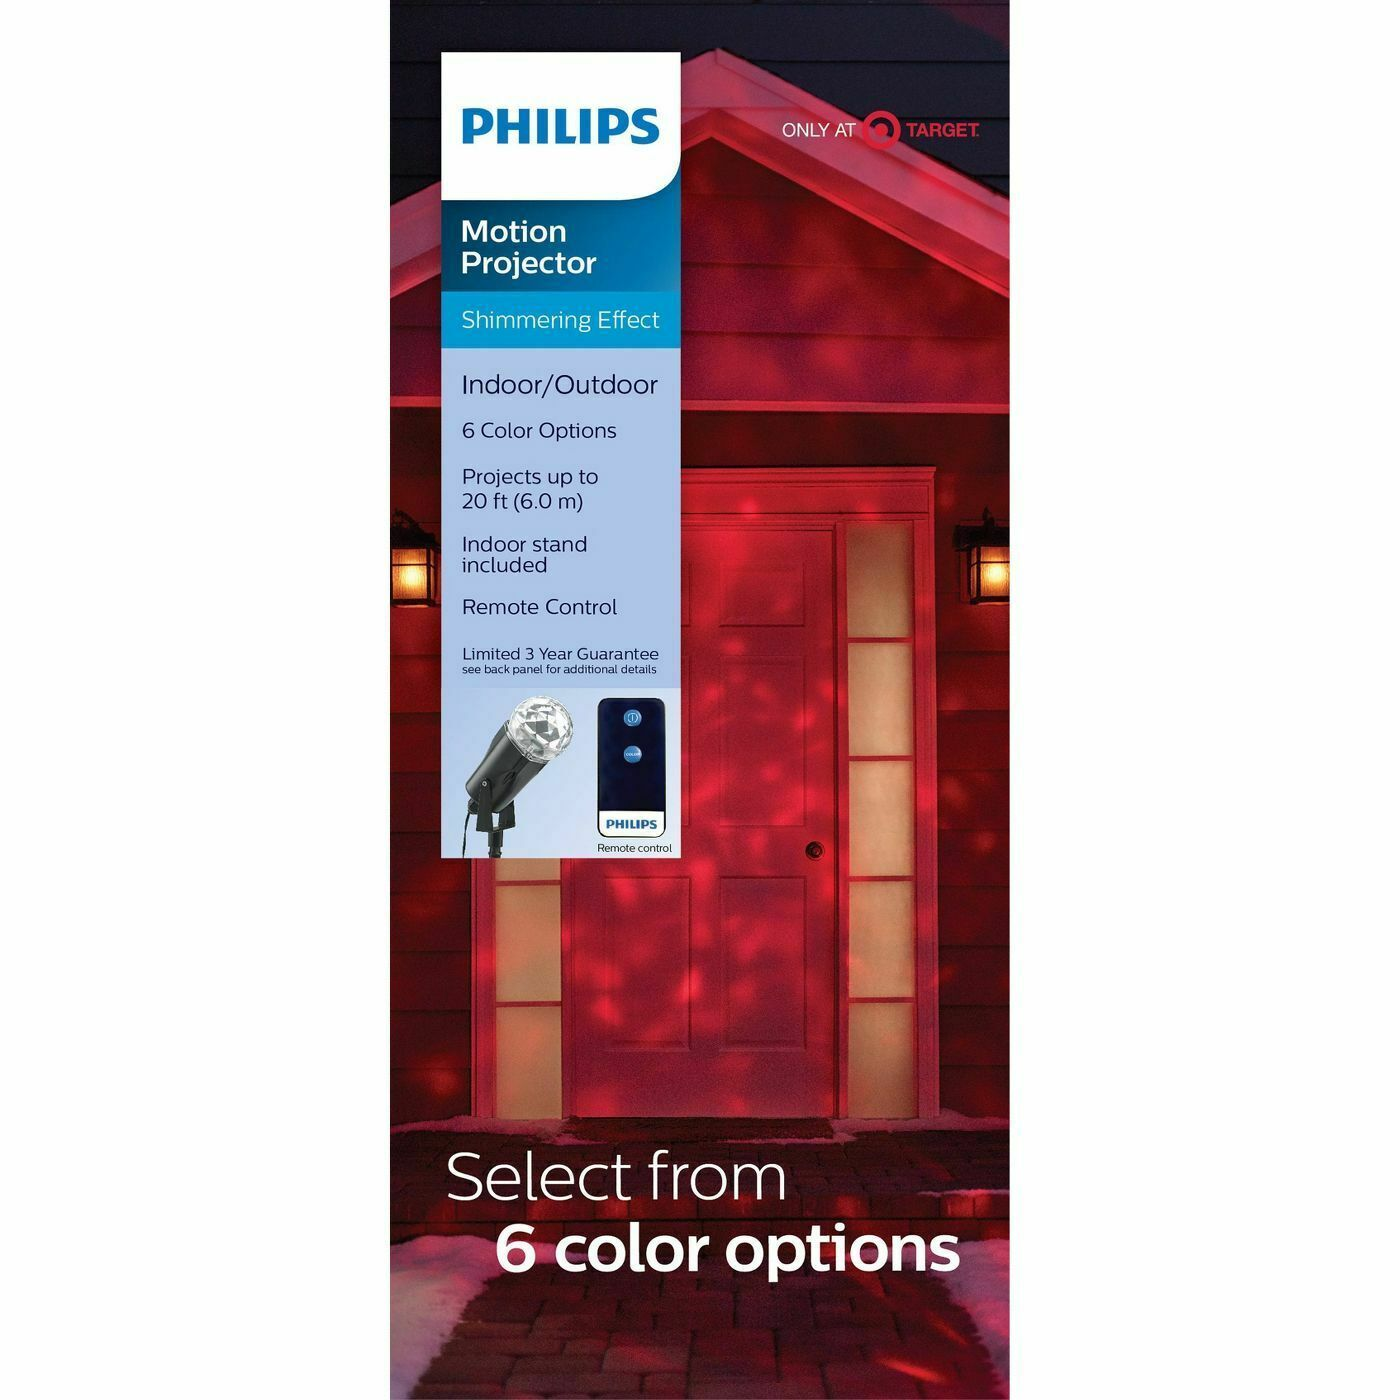 Philips Shimmering Pick-a-Color Remote Christmas LED Motion Projector NEW